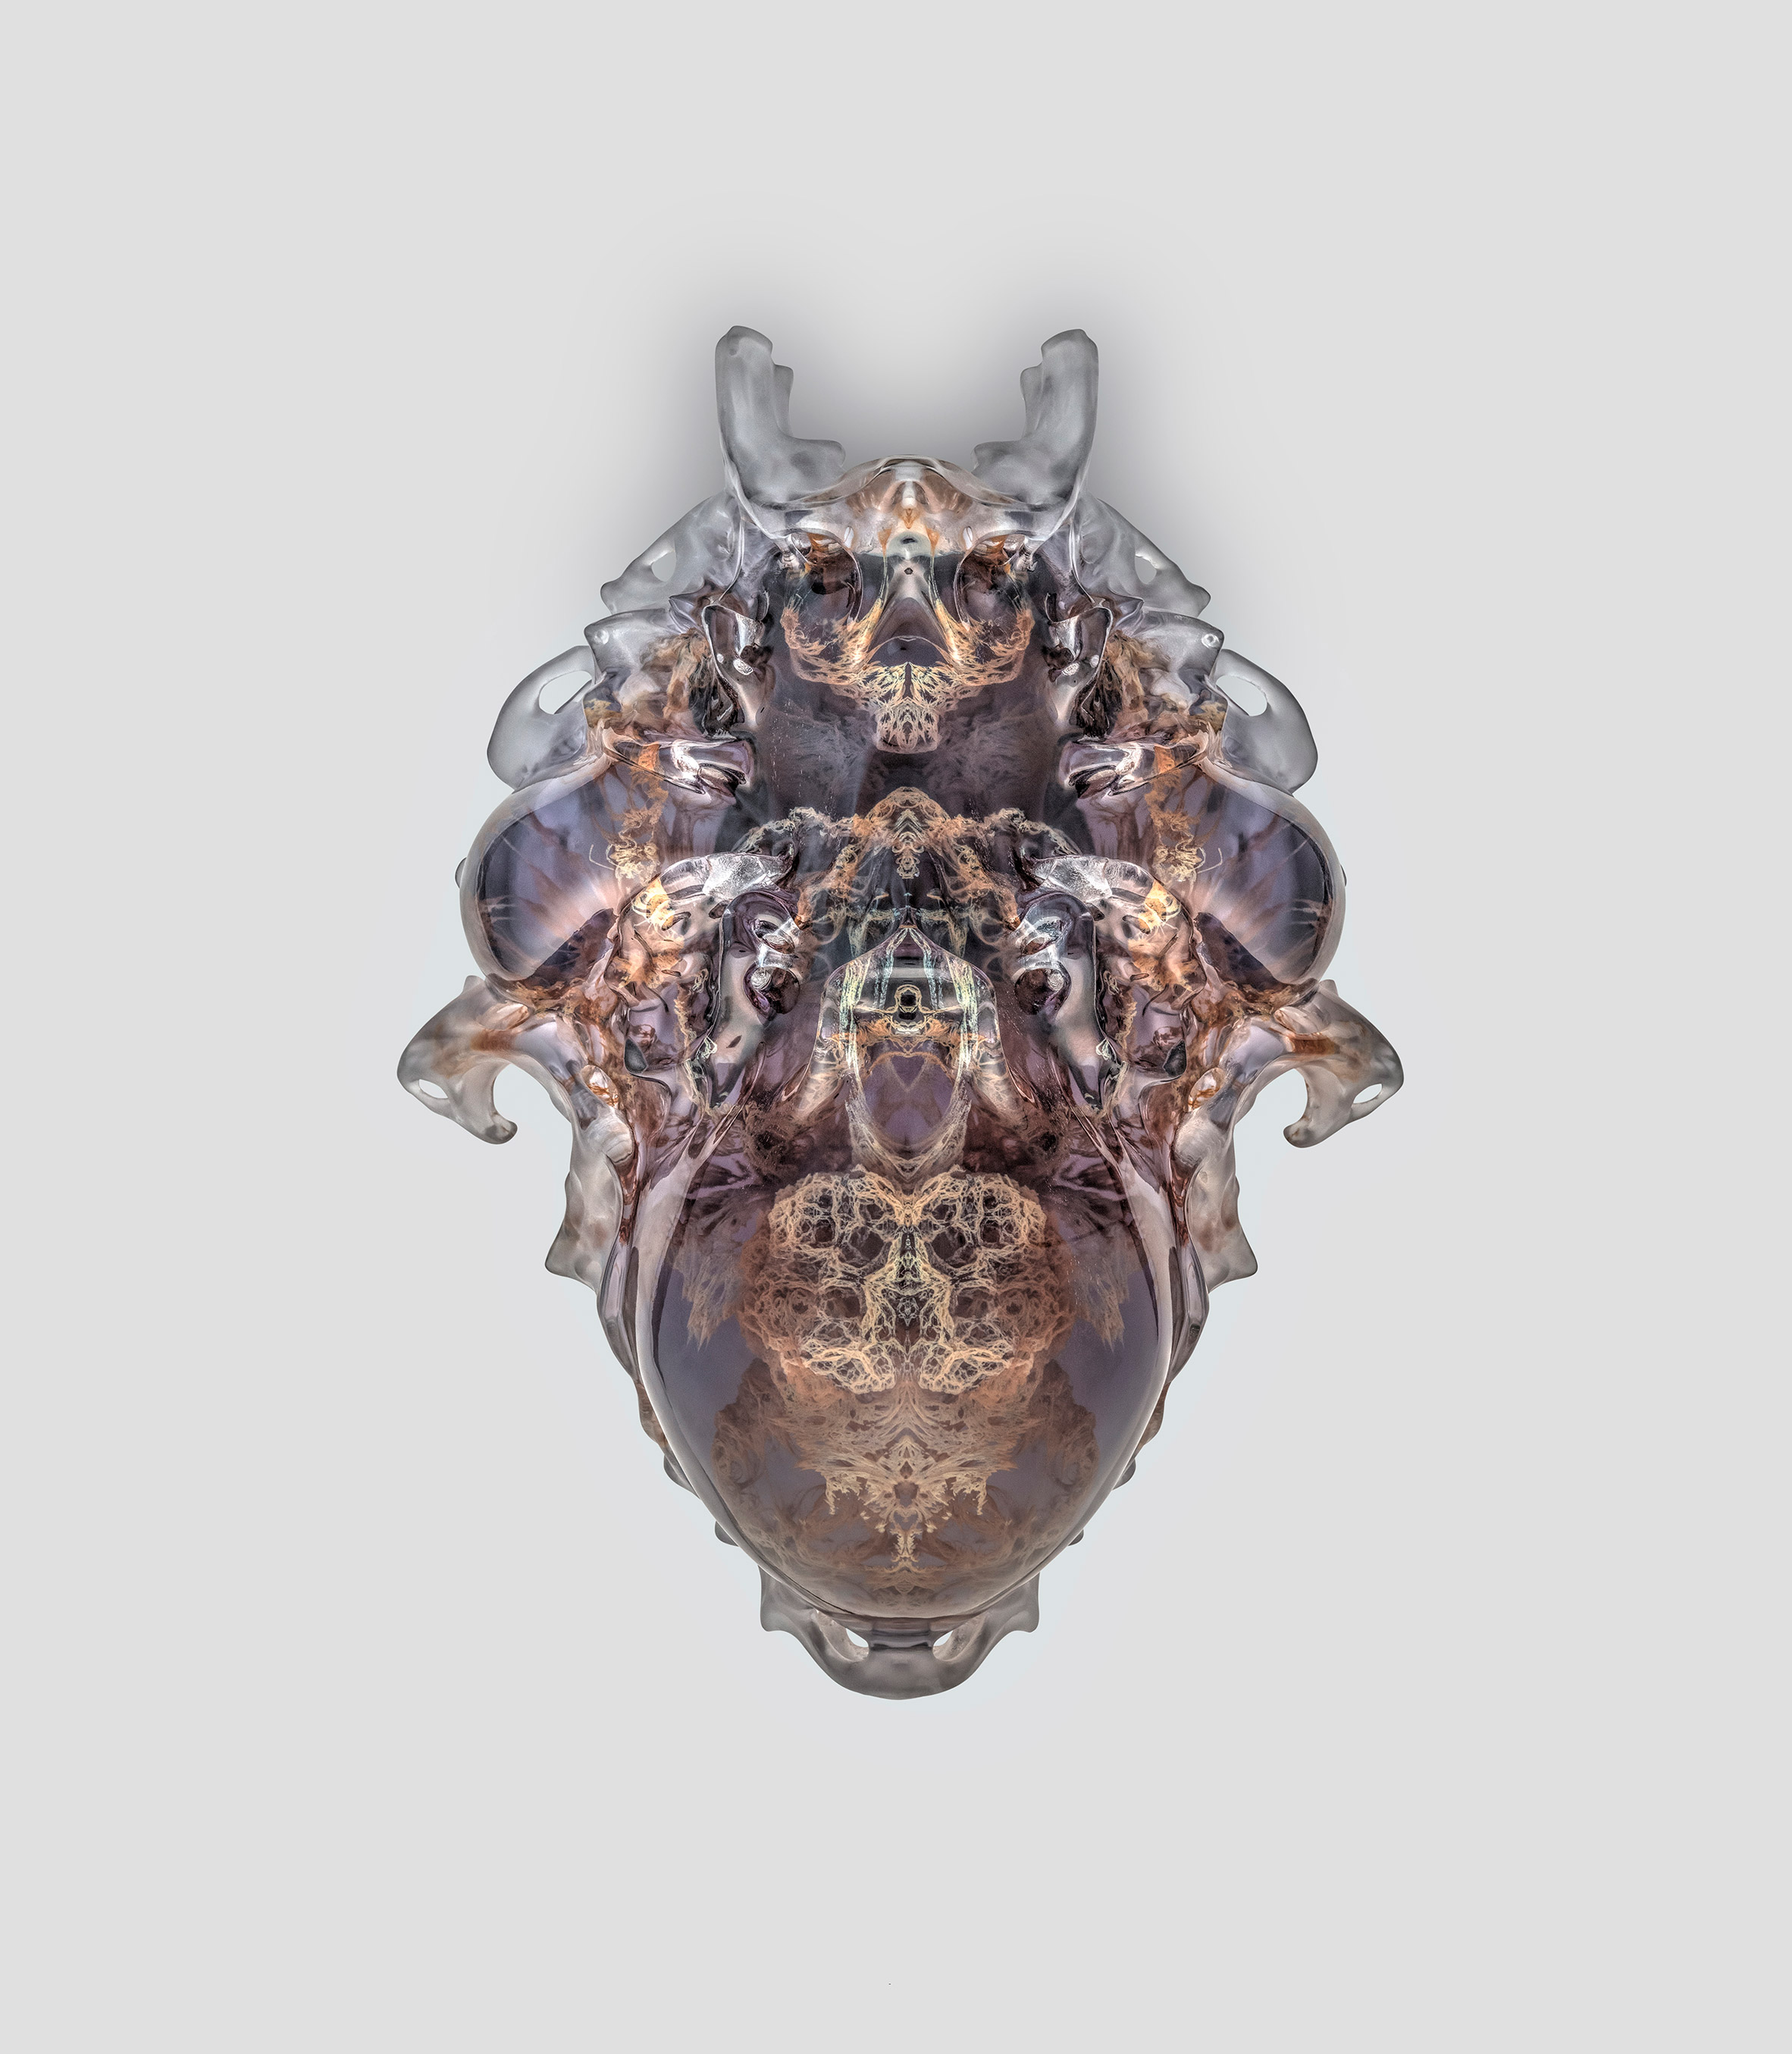 Neri Oxman creates 3D-printed versions of ancient death masks